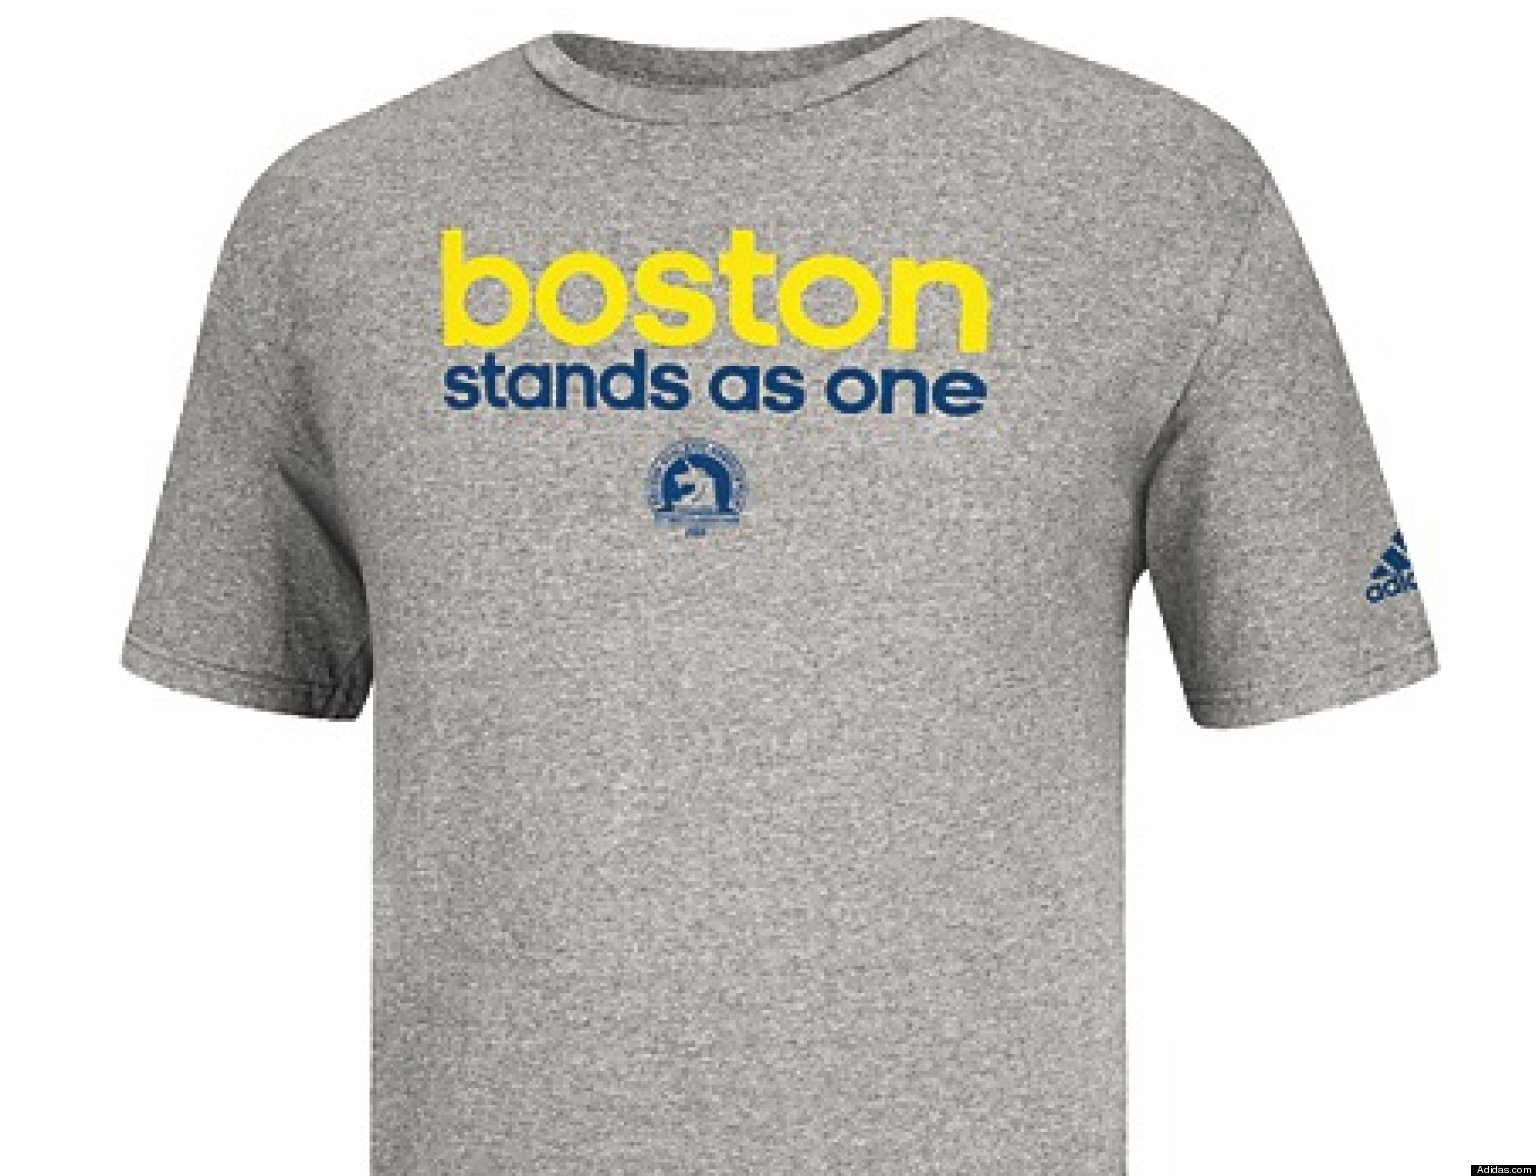 Adidas Sells Out Of T-Shirt Supporting Marathon Victims